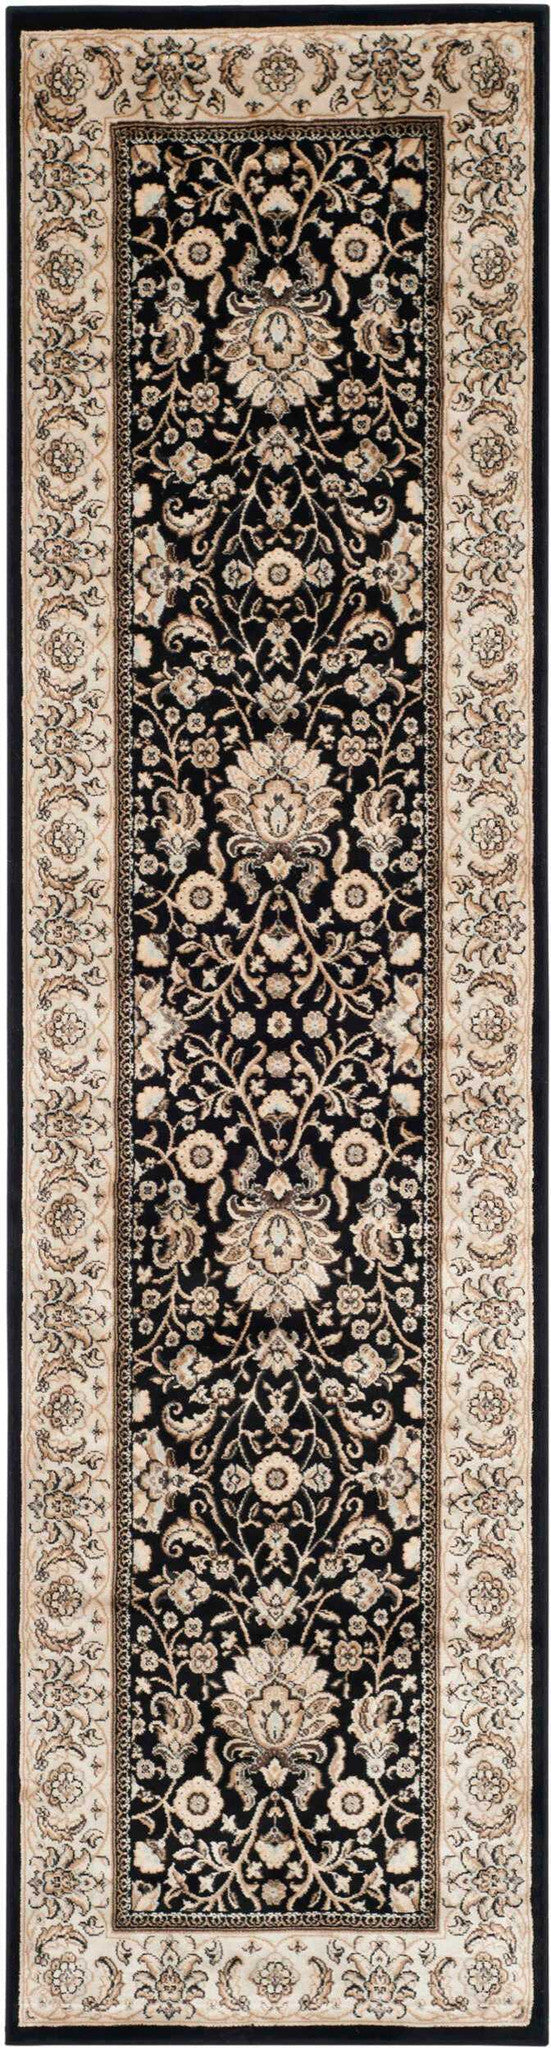 Safavieh Persian Garden Peg607 Area Rug Rug Savings